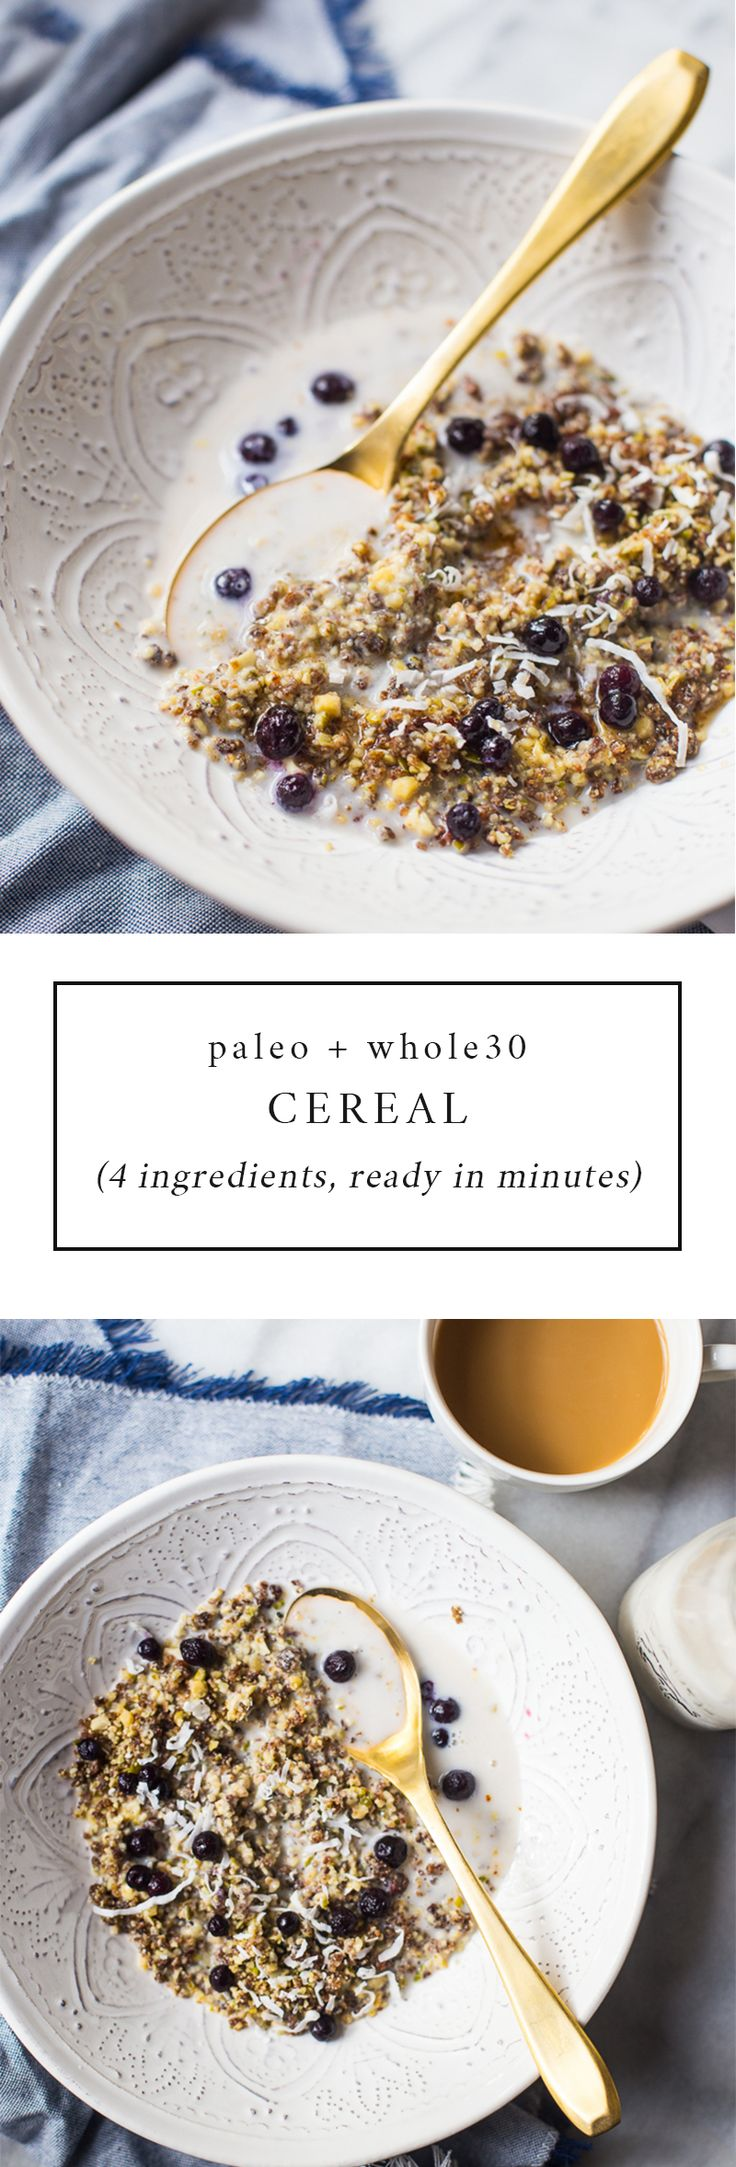 This paleo cereal recipe is quick, easy, and versatile and will transform your mornings. Perfectly crunchy and ready in 2 minutes, you'll love having a batch of this paleo cereal in your pantry at all times! This recipe can be eaten as a Whole30 cereal, too, by simply omitting maple syrup during serving.